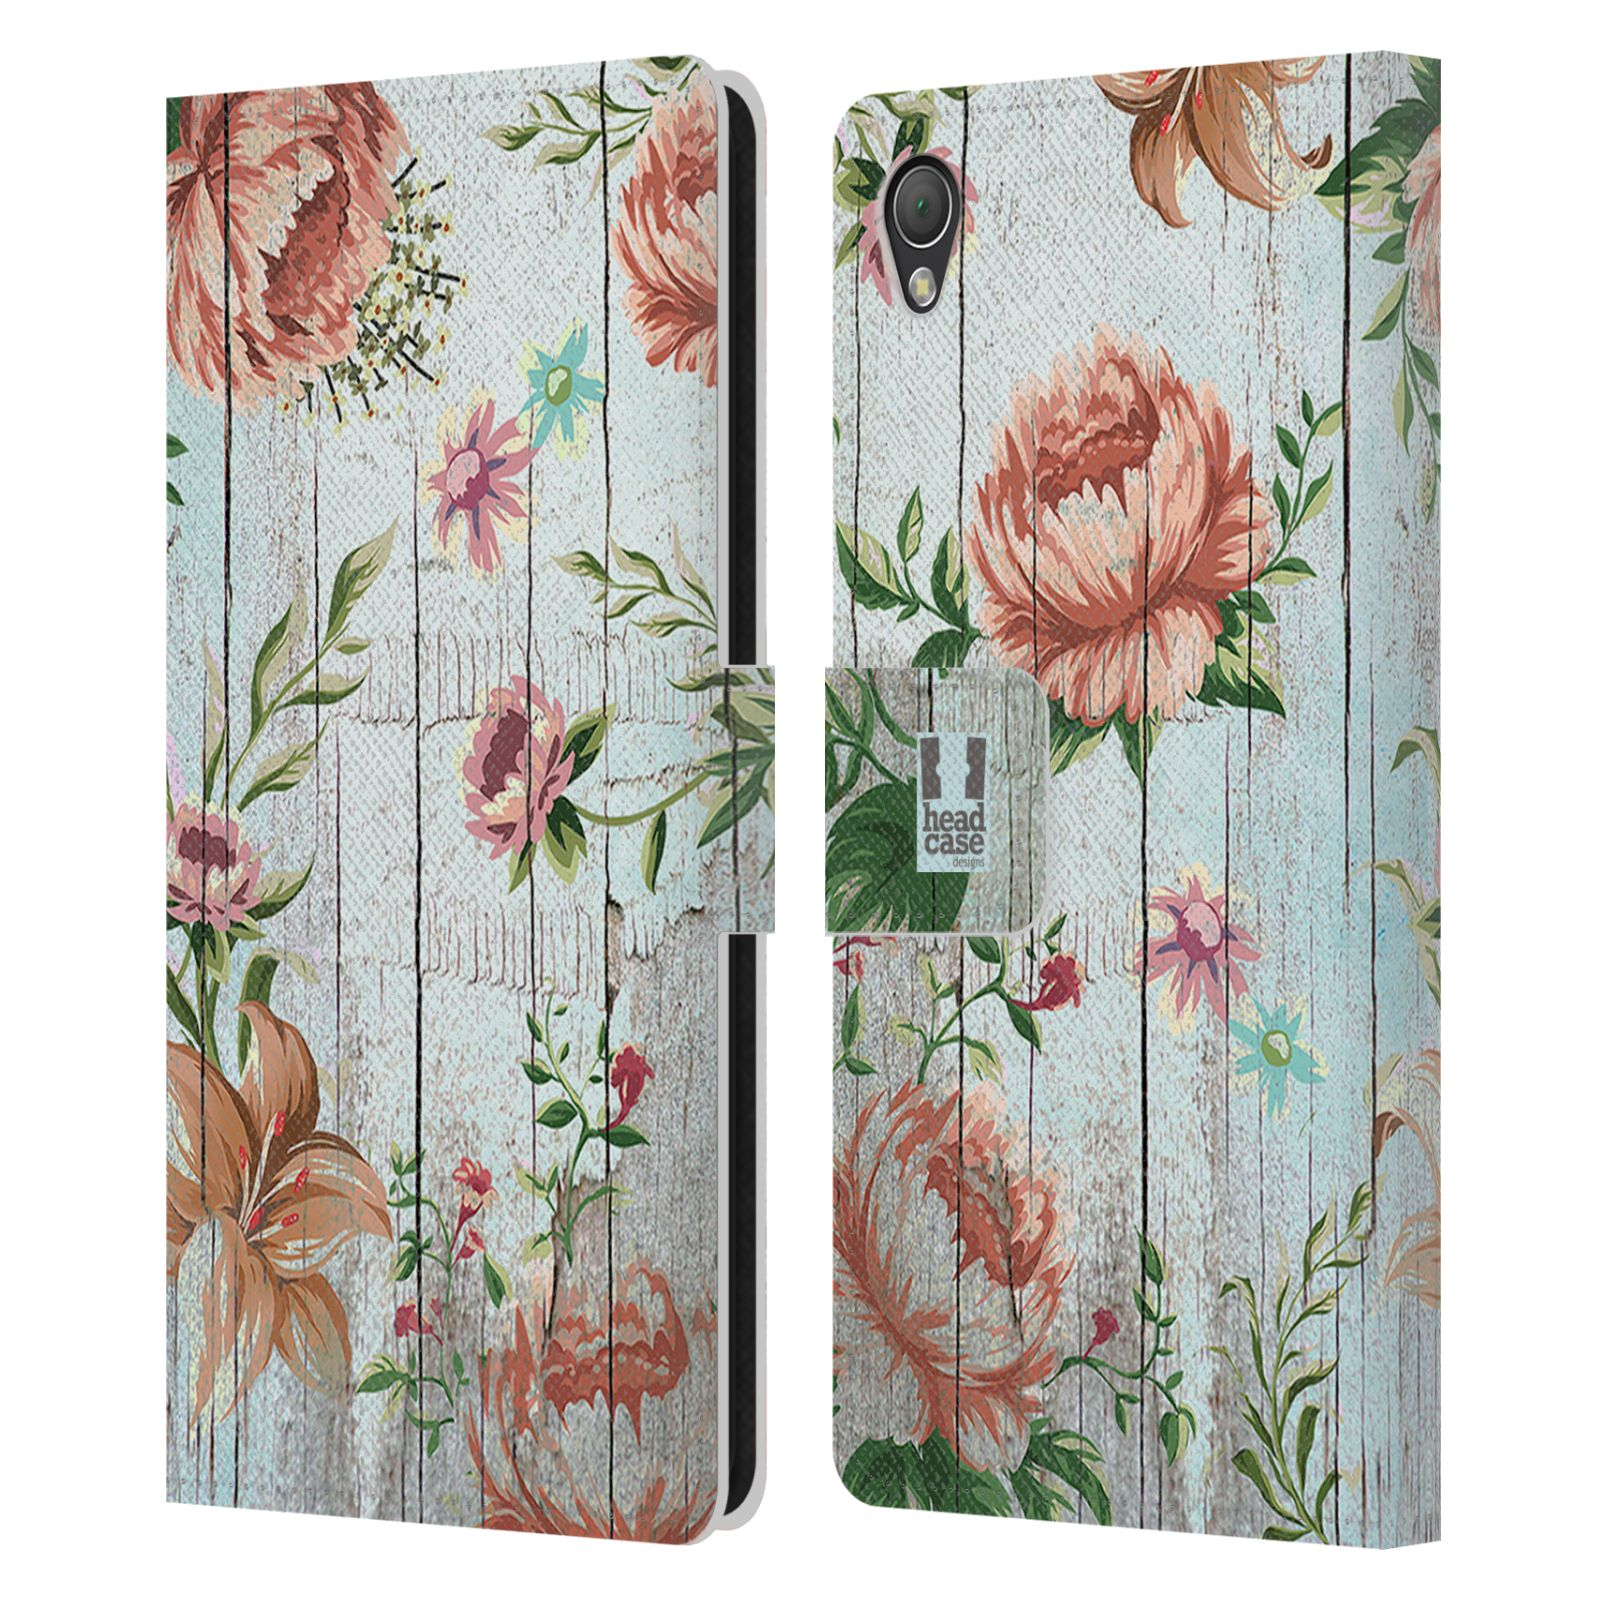 HEAD CASE DESIGNS COUNTRY CHARM LEATHER BOOK WALLET CASE COVER FOR SONY PHONES 1